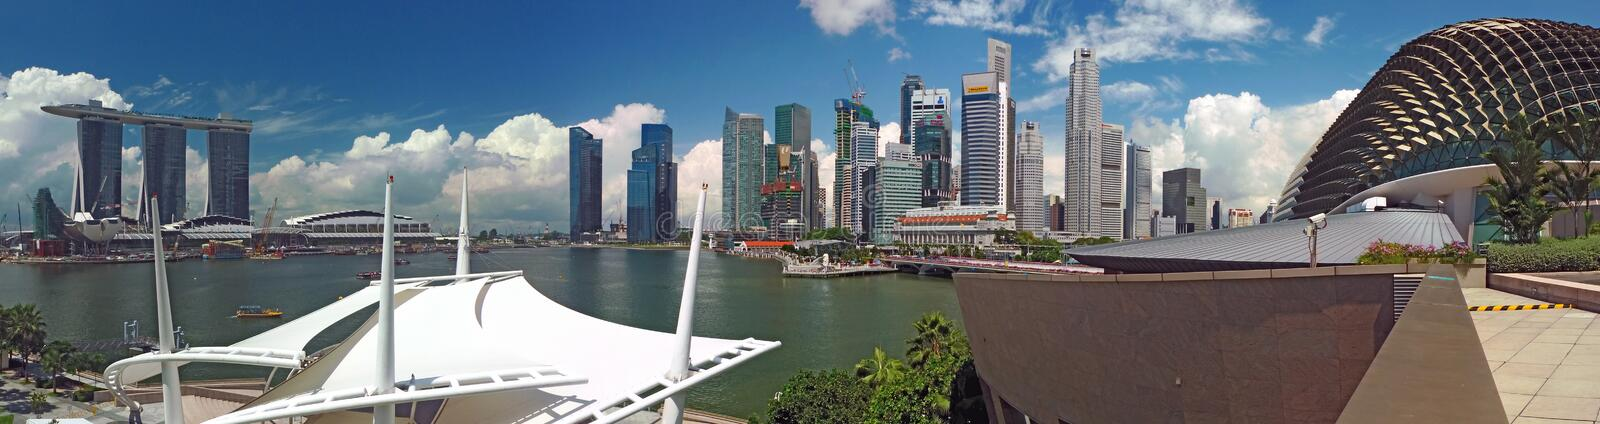 Business District Late Morning Scene Singapore stock photography